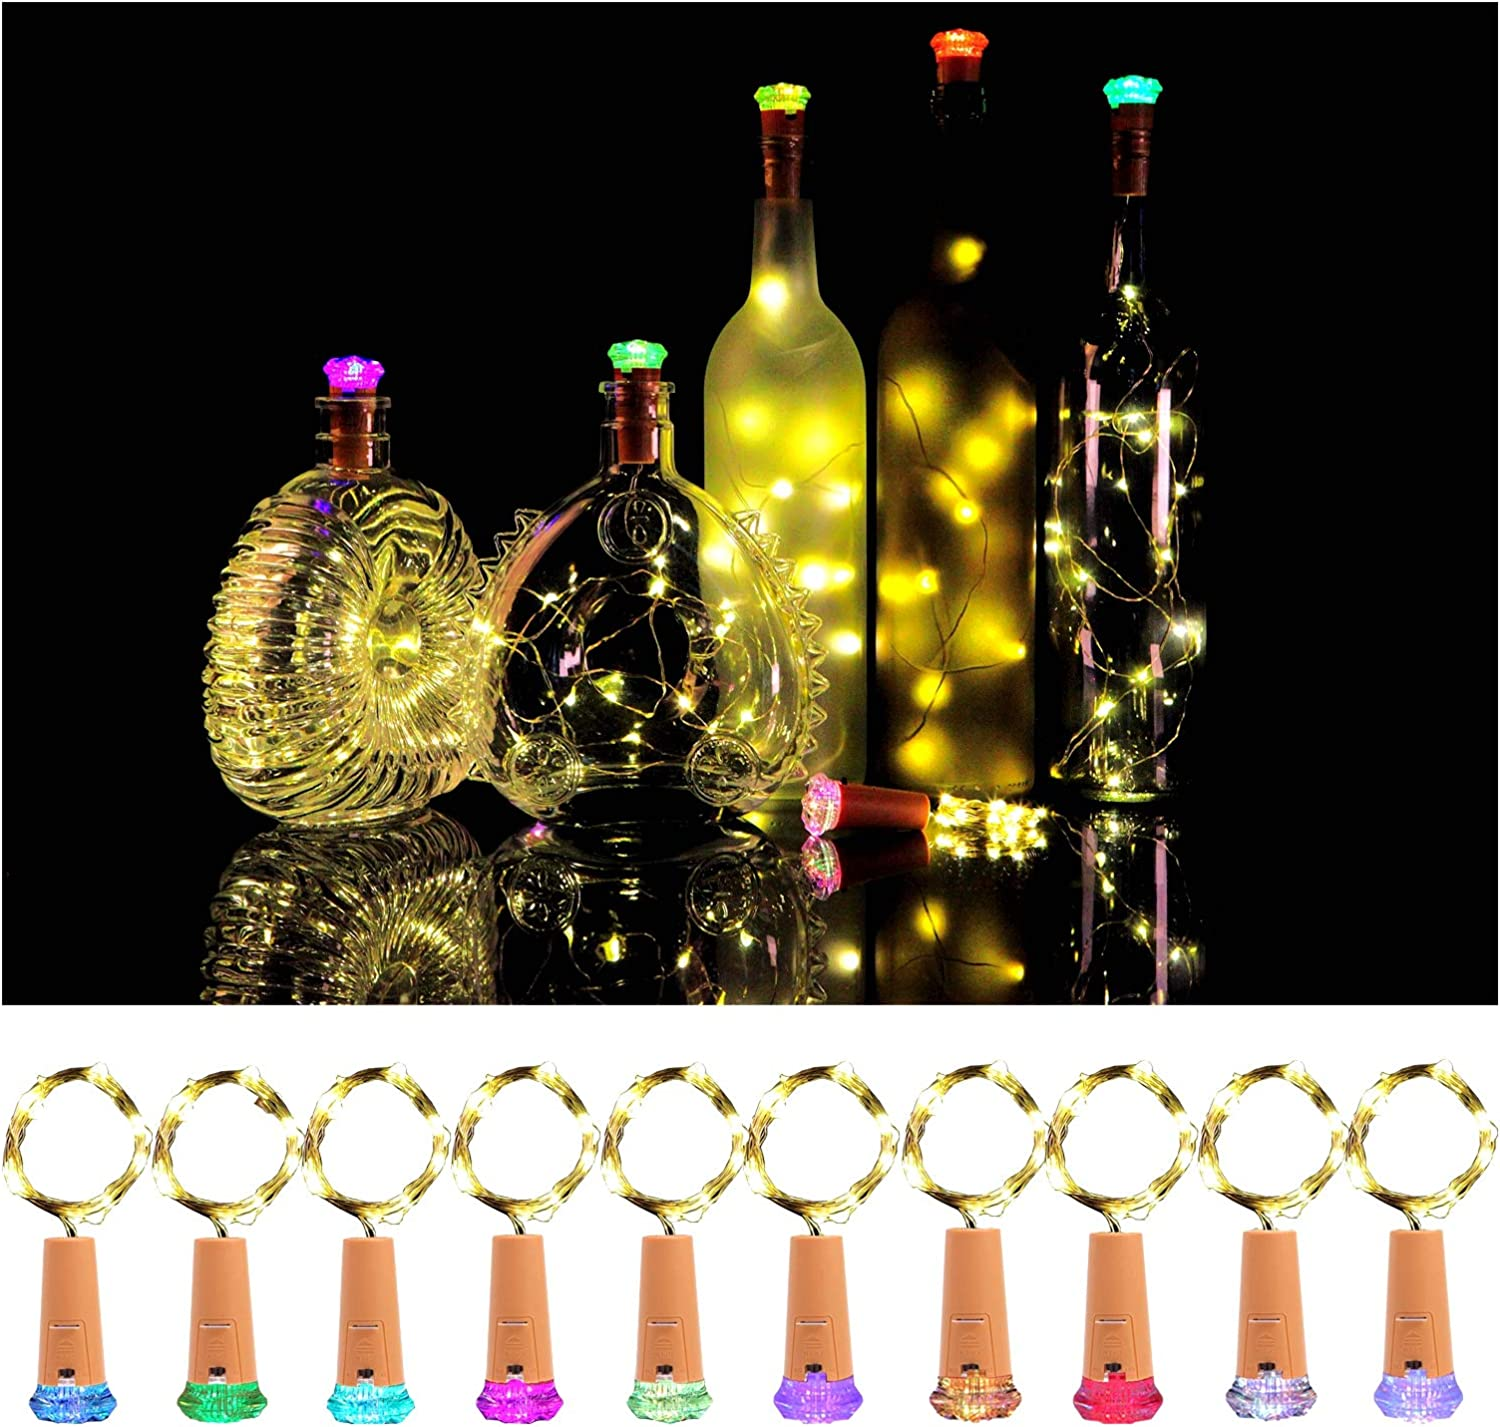 KZOBYD Wine Bottle Lights with Cork 10 Pack Fairy Battery Operated Mini Lights Diamond Shaped LED Cork Lights for Wine Bottles DIY Party Decor Christmas Halloween Wedding Festival(Warm White)